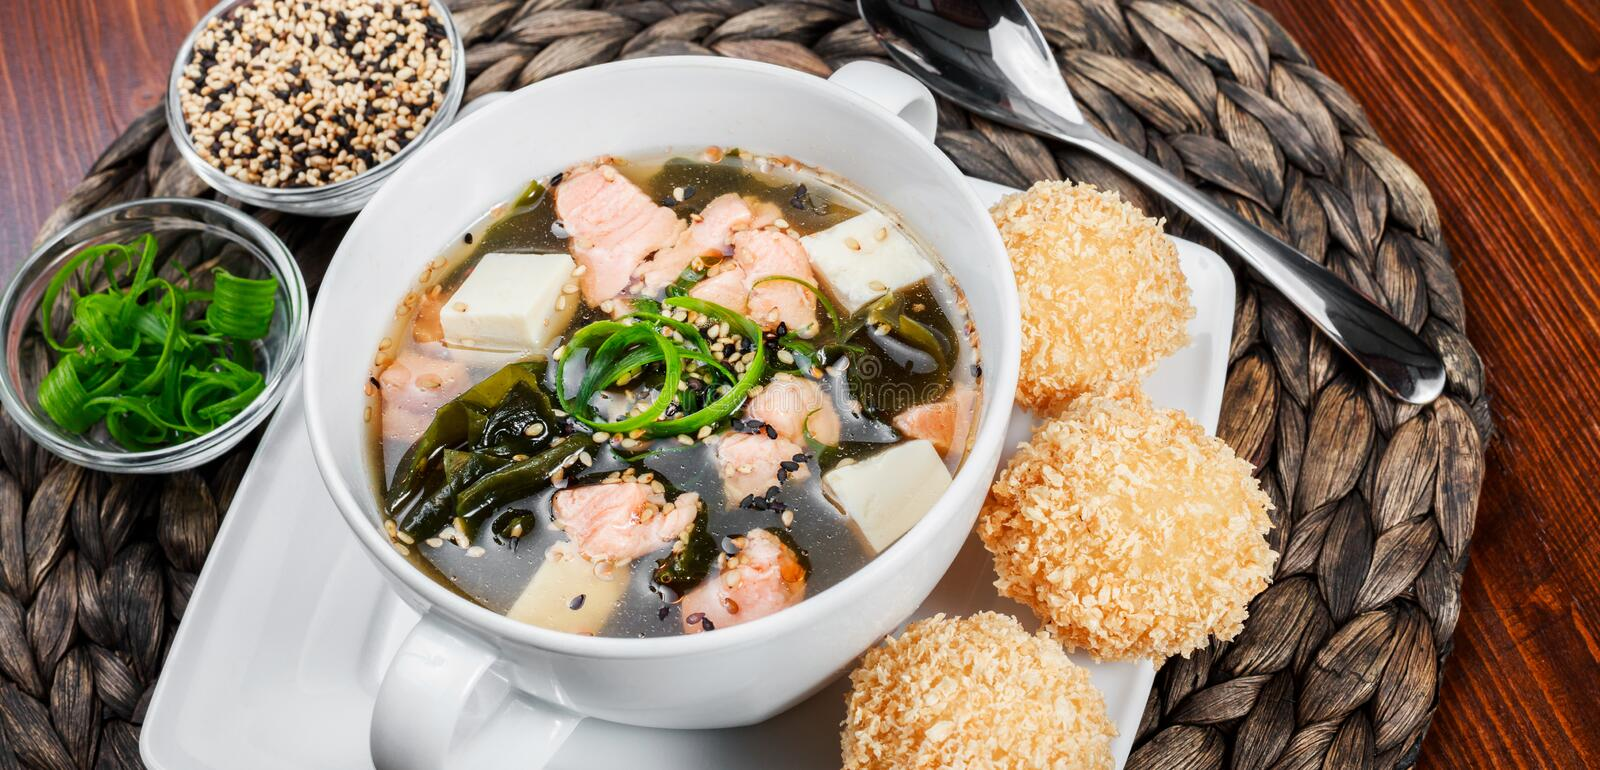 Seafood Soup with salmon, cheese, seaweed, sesame and bread on plate on wooden background. Mediterranean food. Ingredients on table stock images